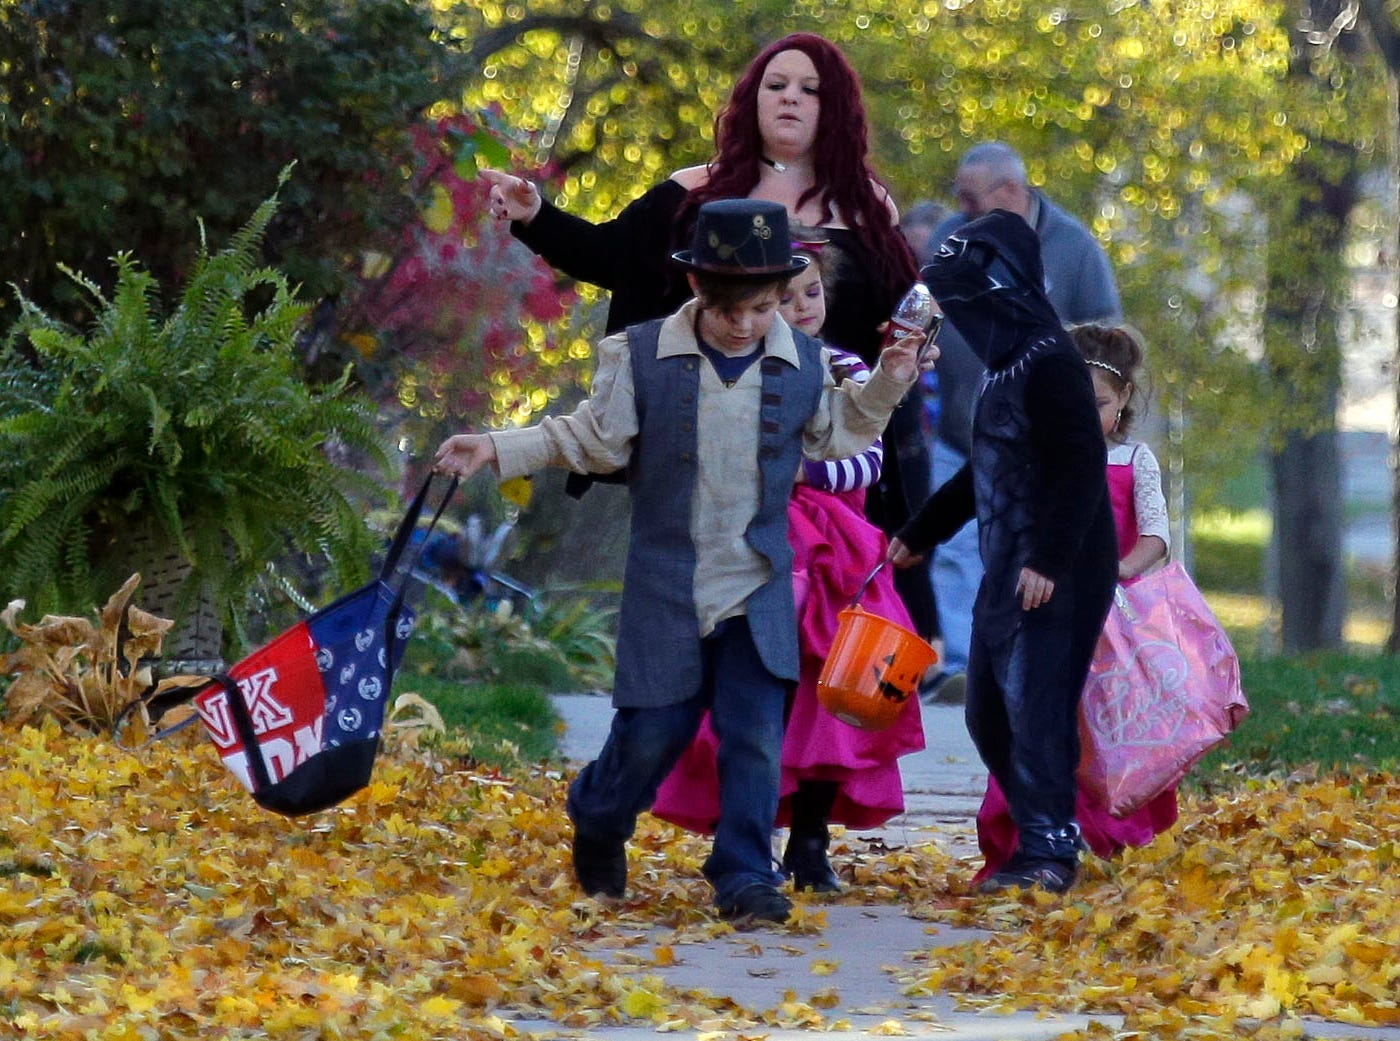 It's Halloween and trick-or-treating takes place Wednesday, October 31, 2018, in Appleton, Wis.